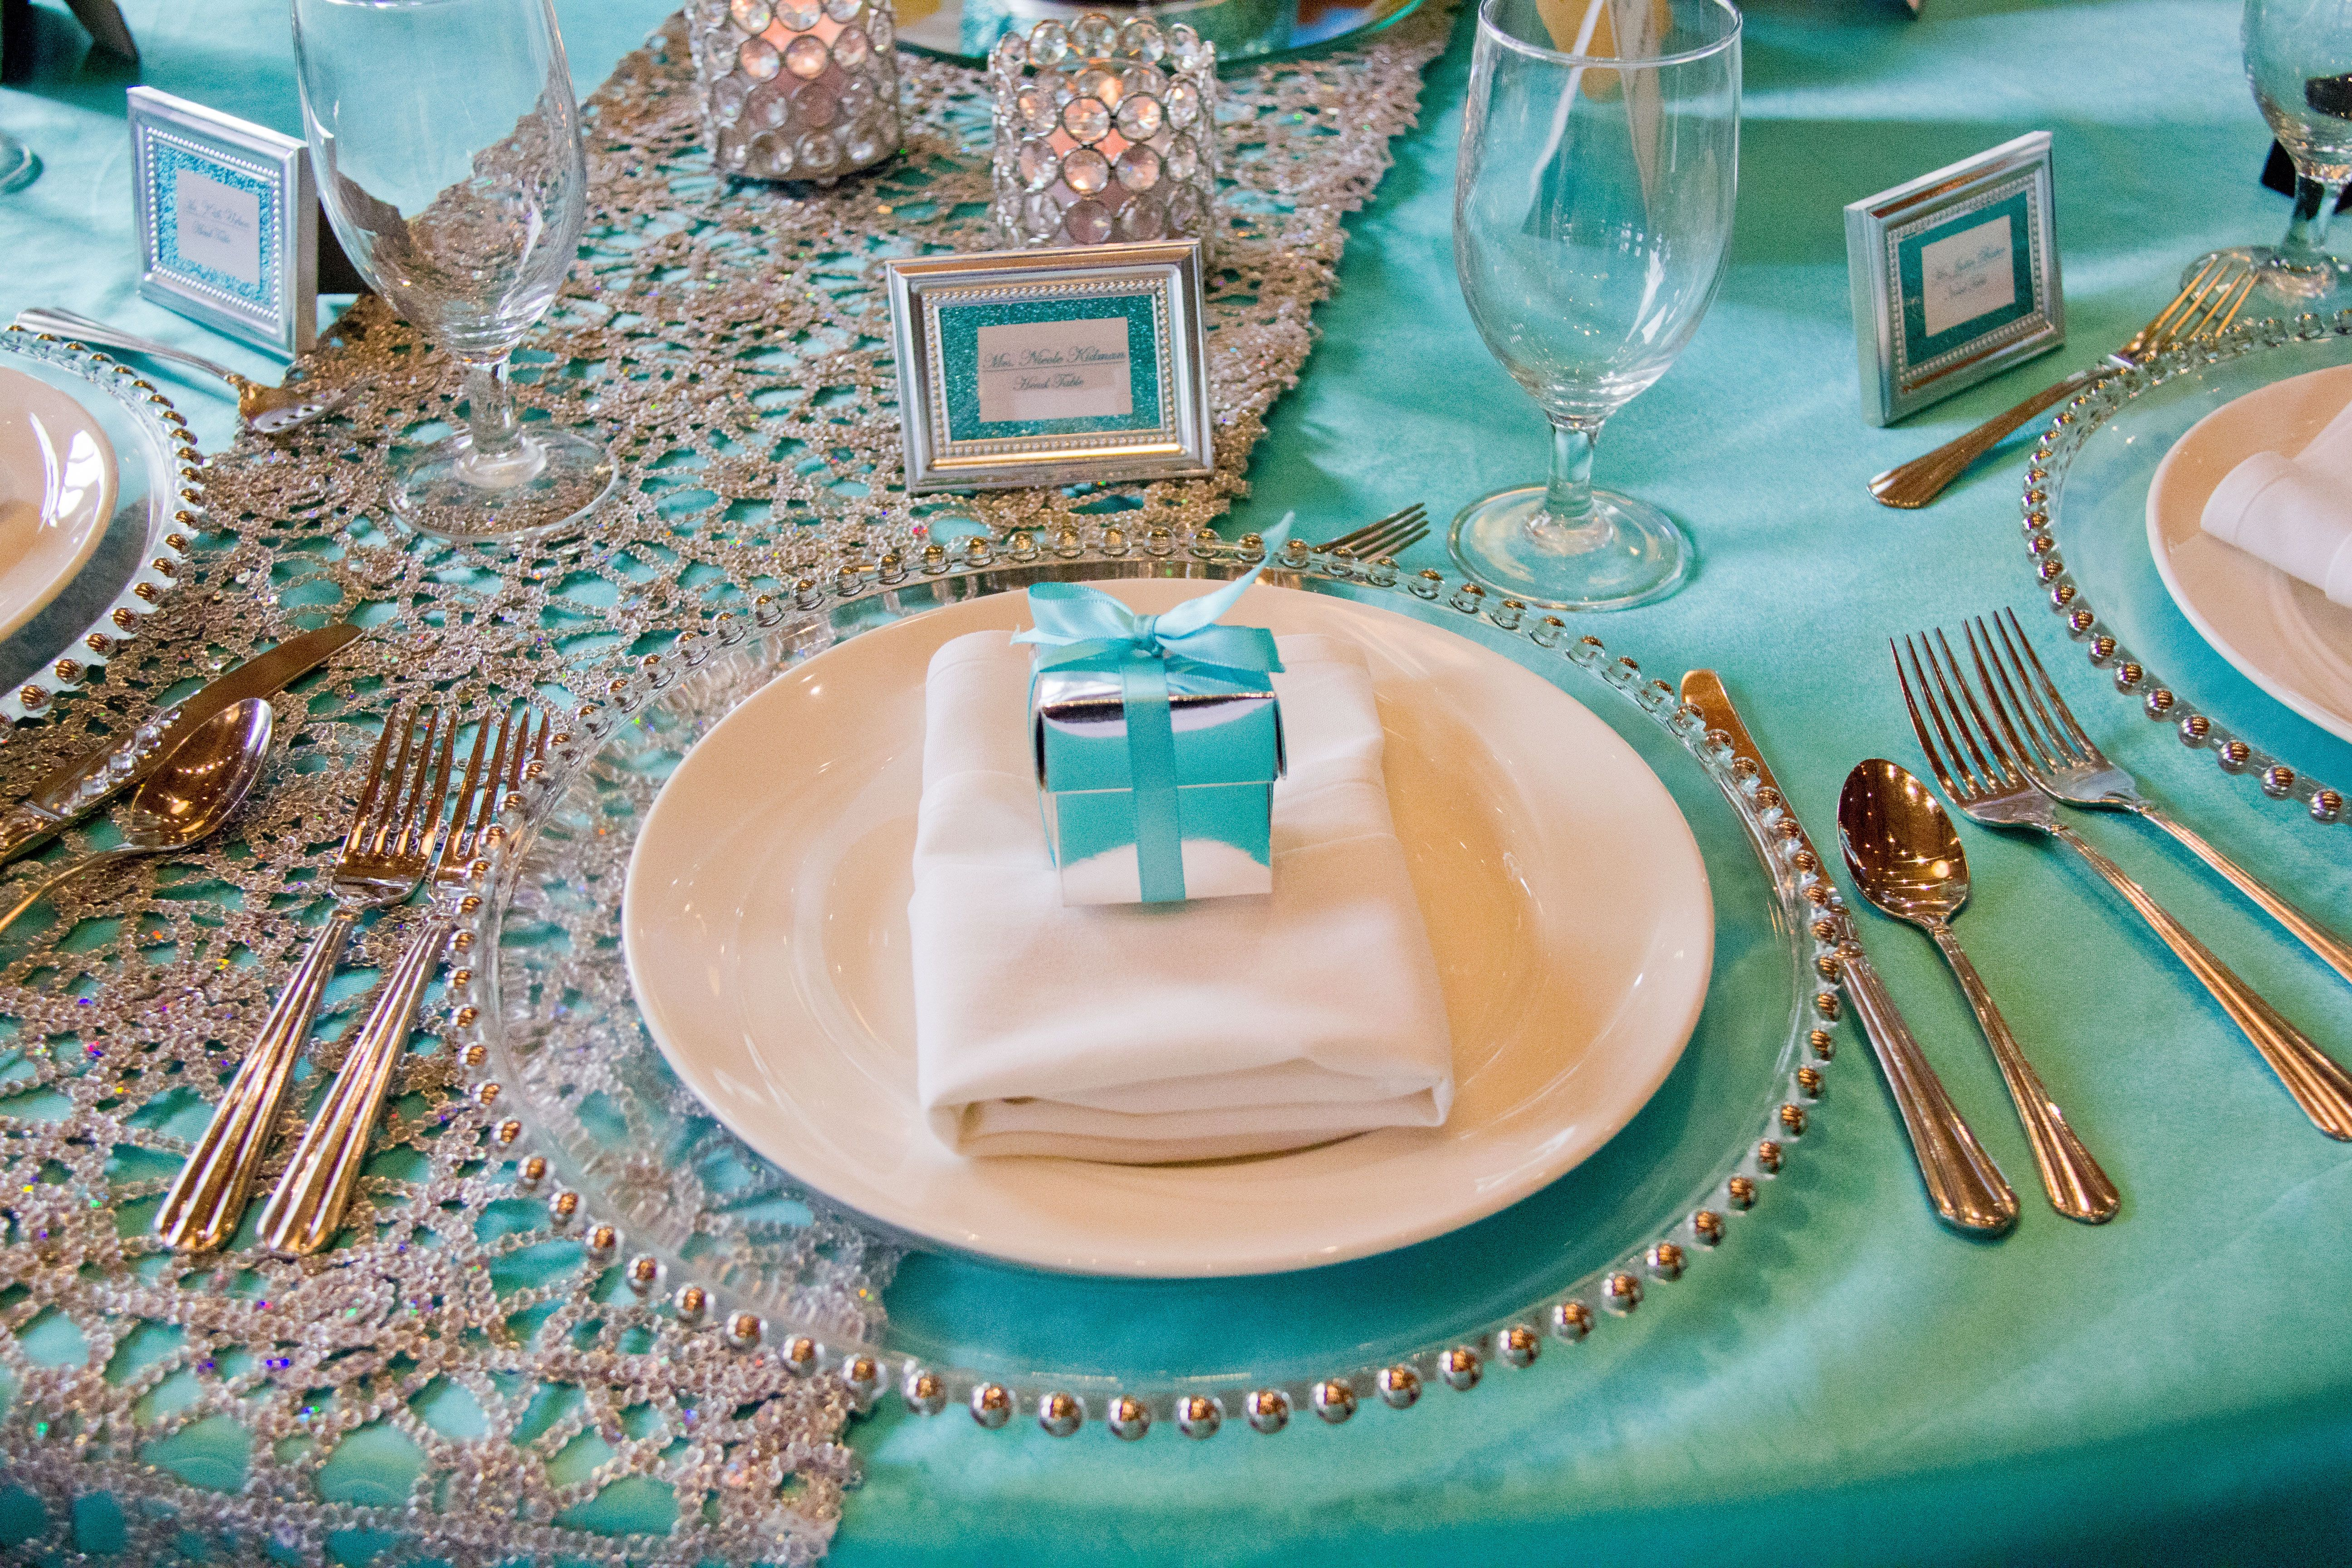 snowflake table decorations.htm tiffany blue satin overlay  silver chemical lace table runner with  tiffany blue satin overlay  silver